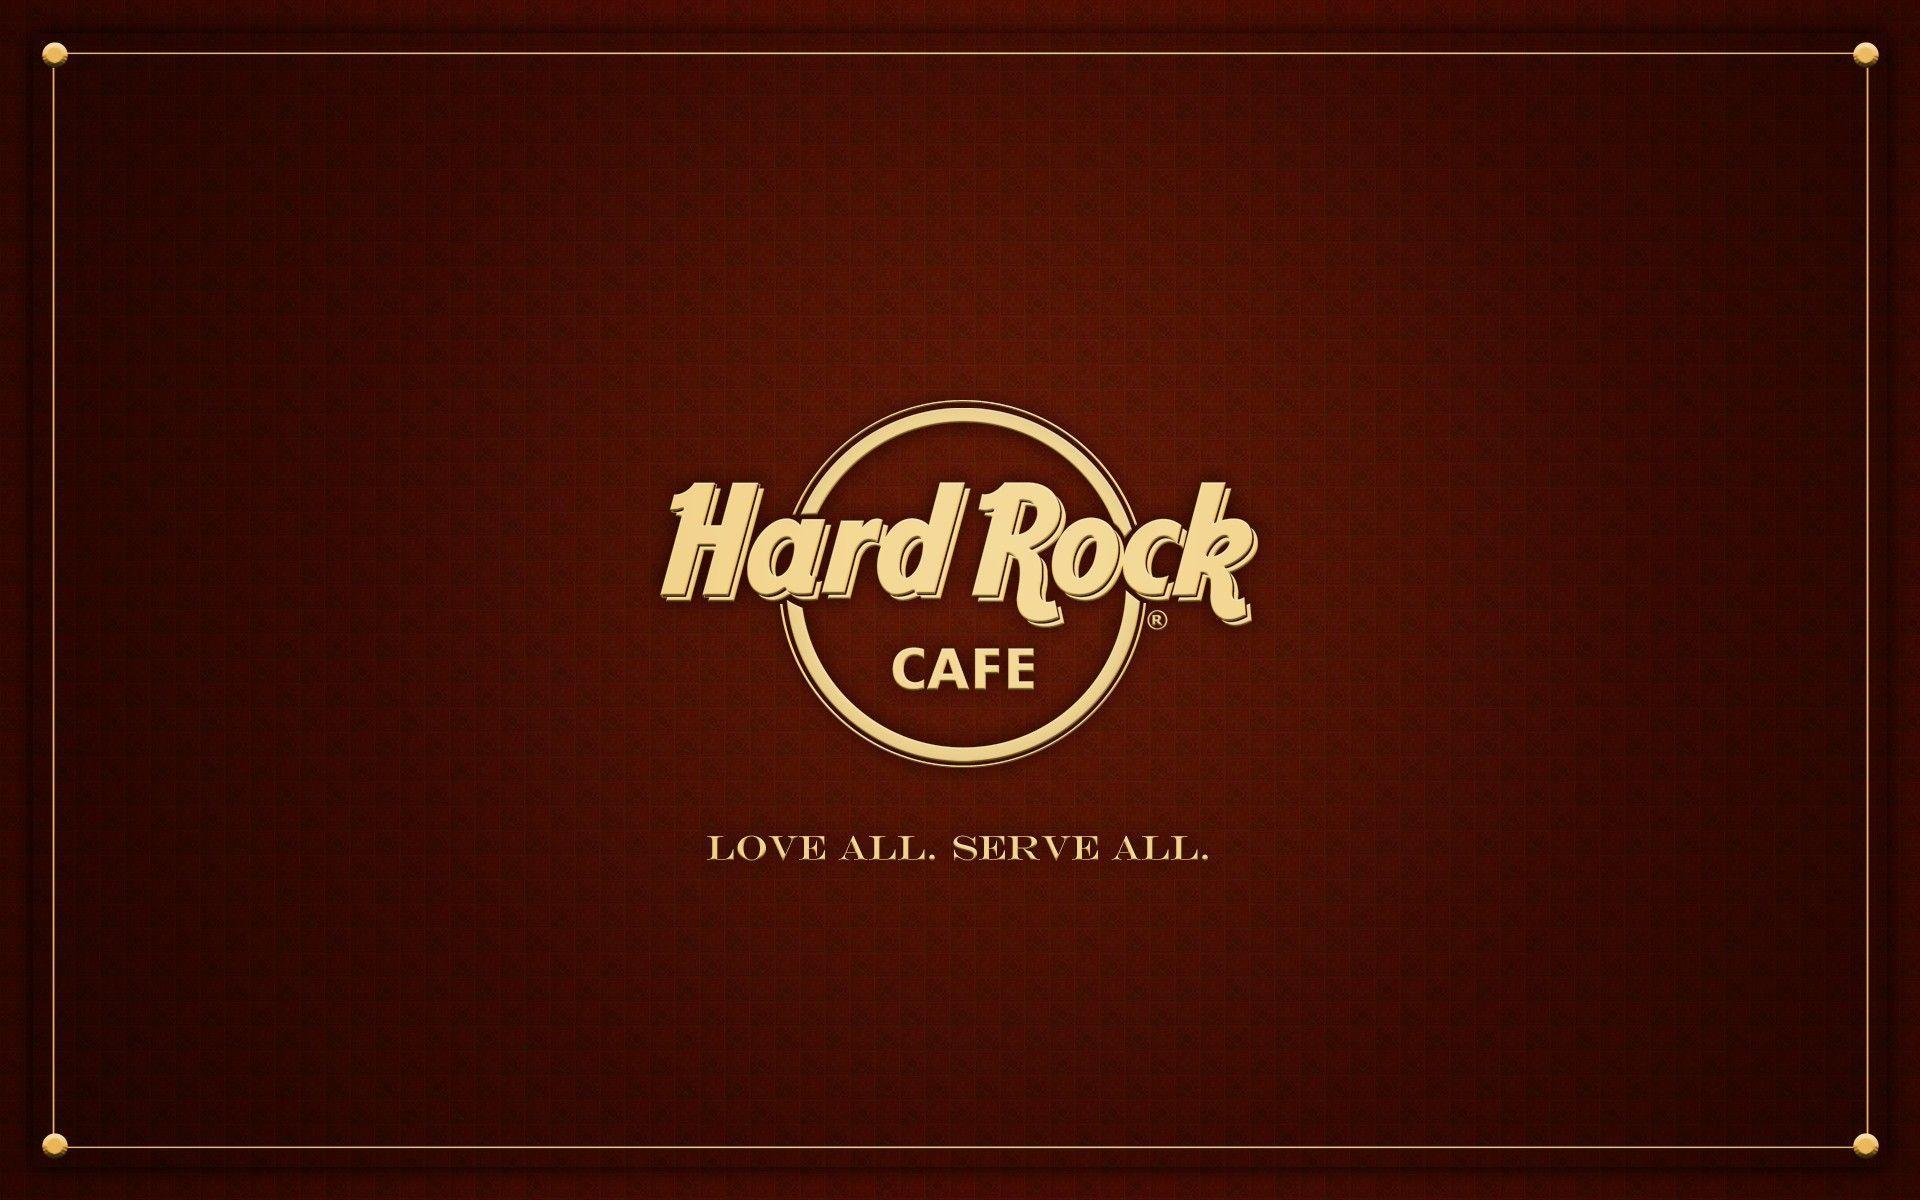 1 Hard Rock Cafe HD Wallpapers